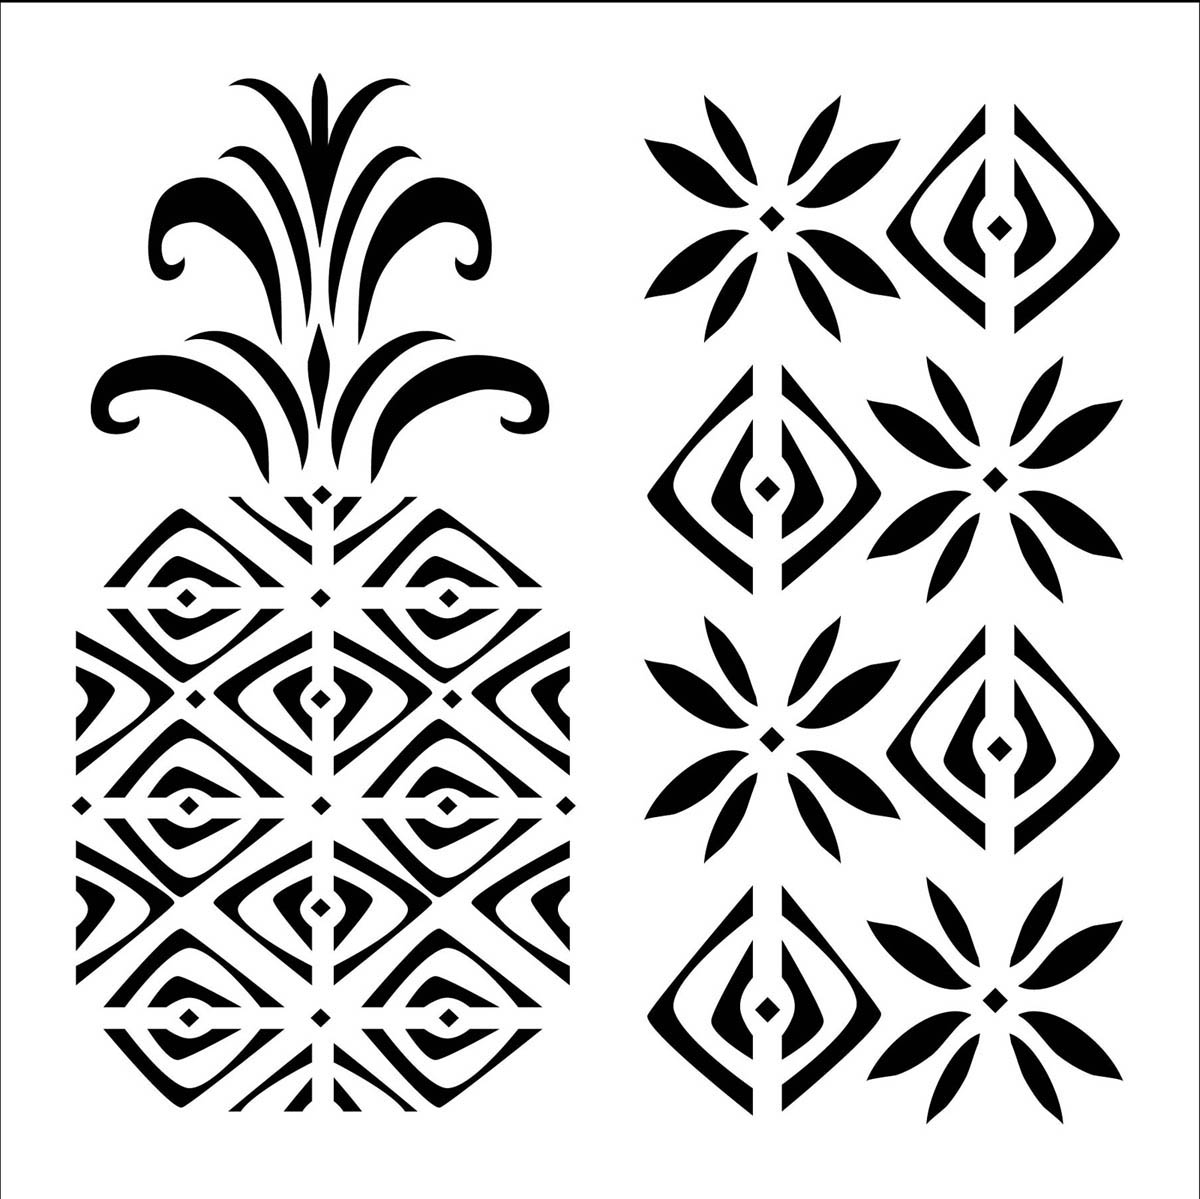 FolkArt ® Painting Stencils - Small - Pineapple - 31473